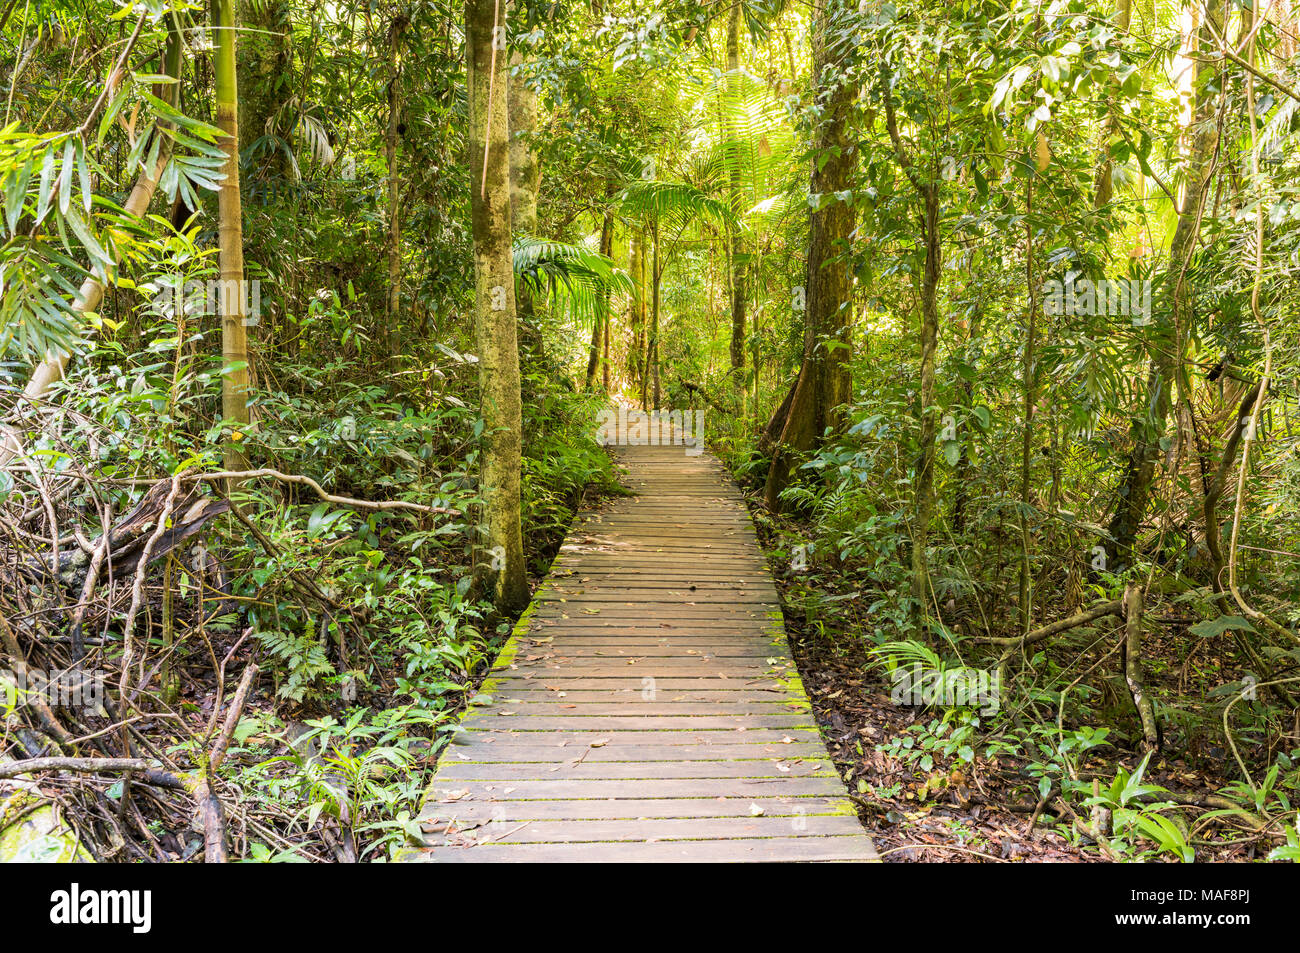 Maiala hiking area in the D'aguilar State Forest near Mount Glorious, Queensland, Australia - Stock Image